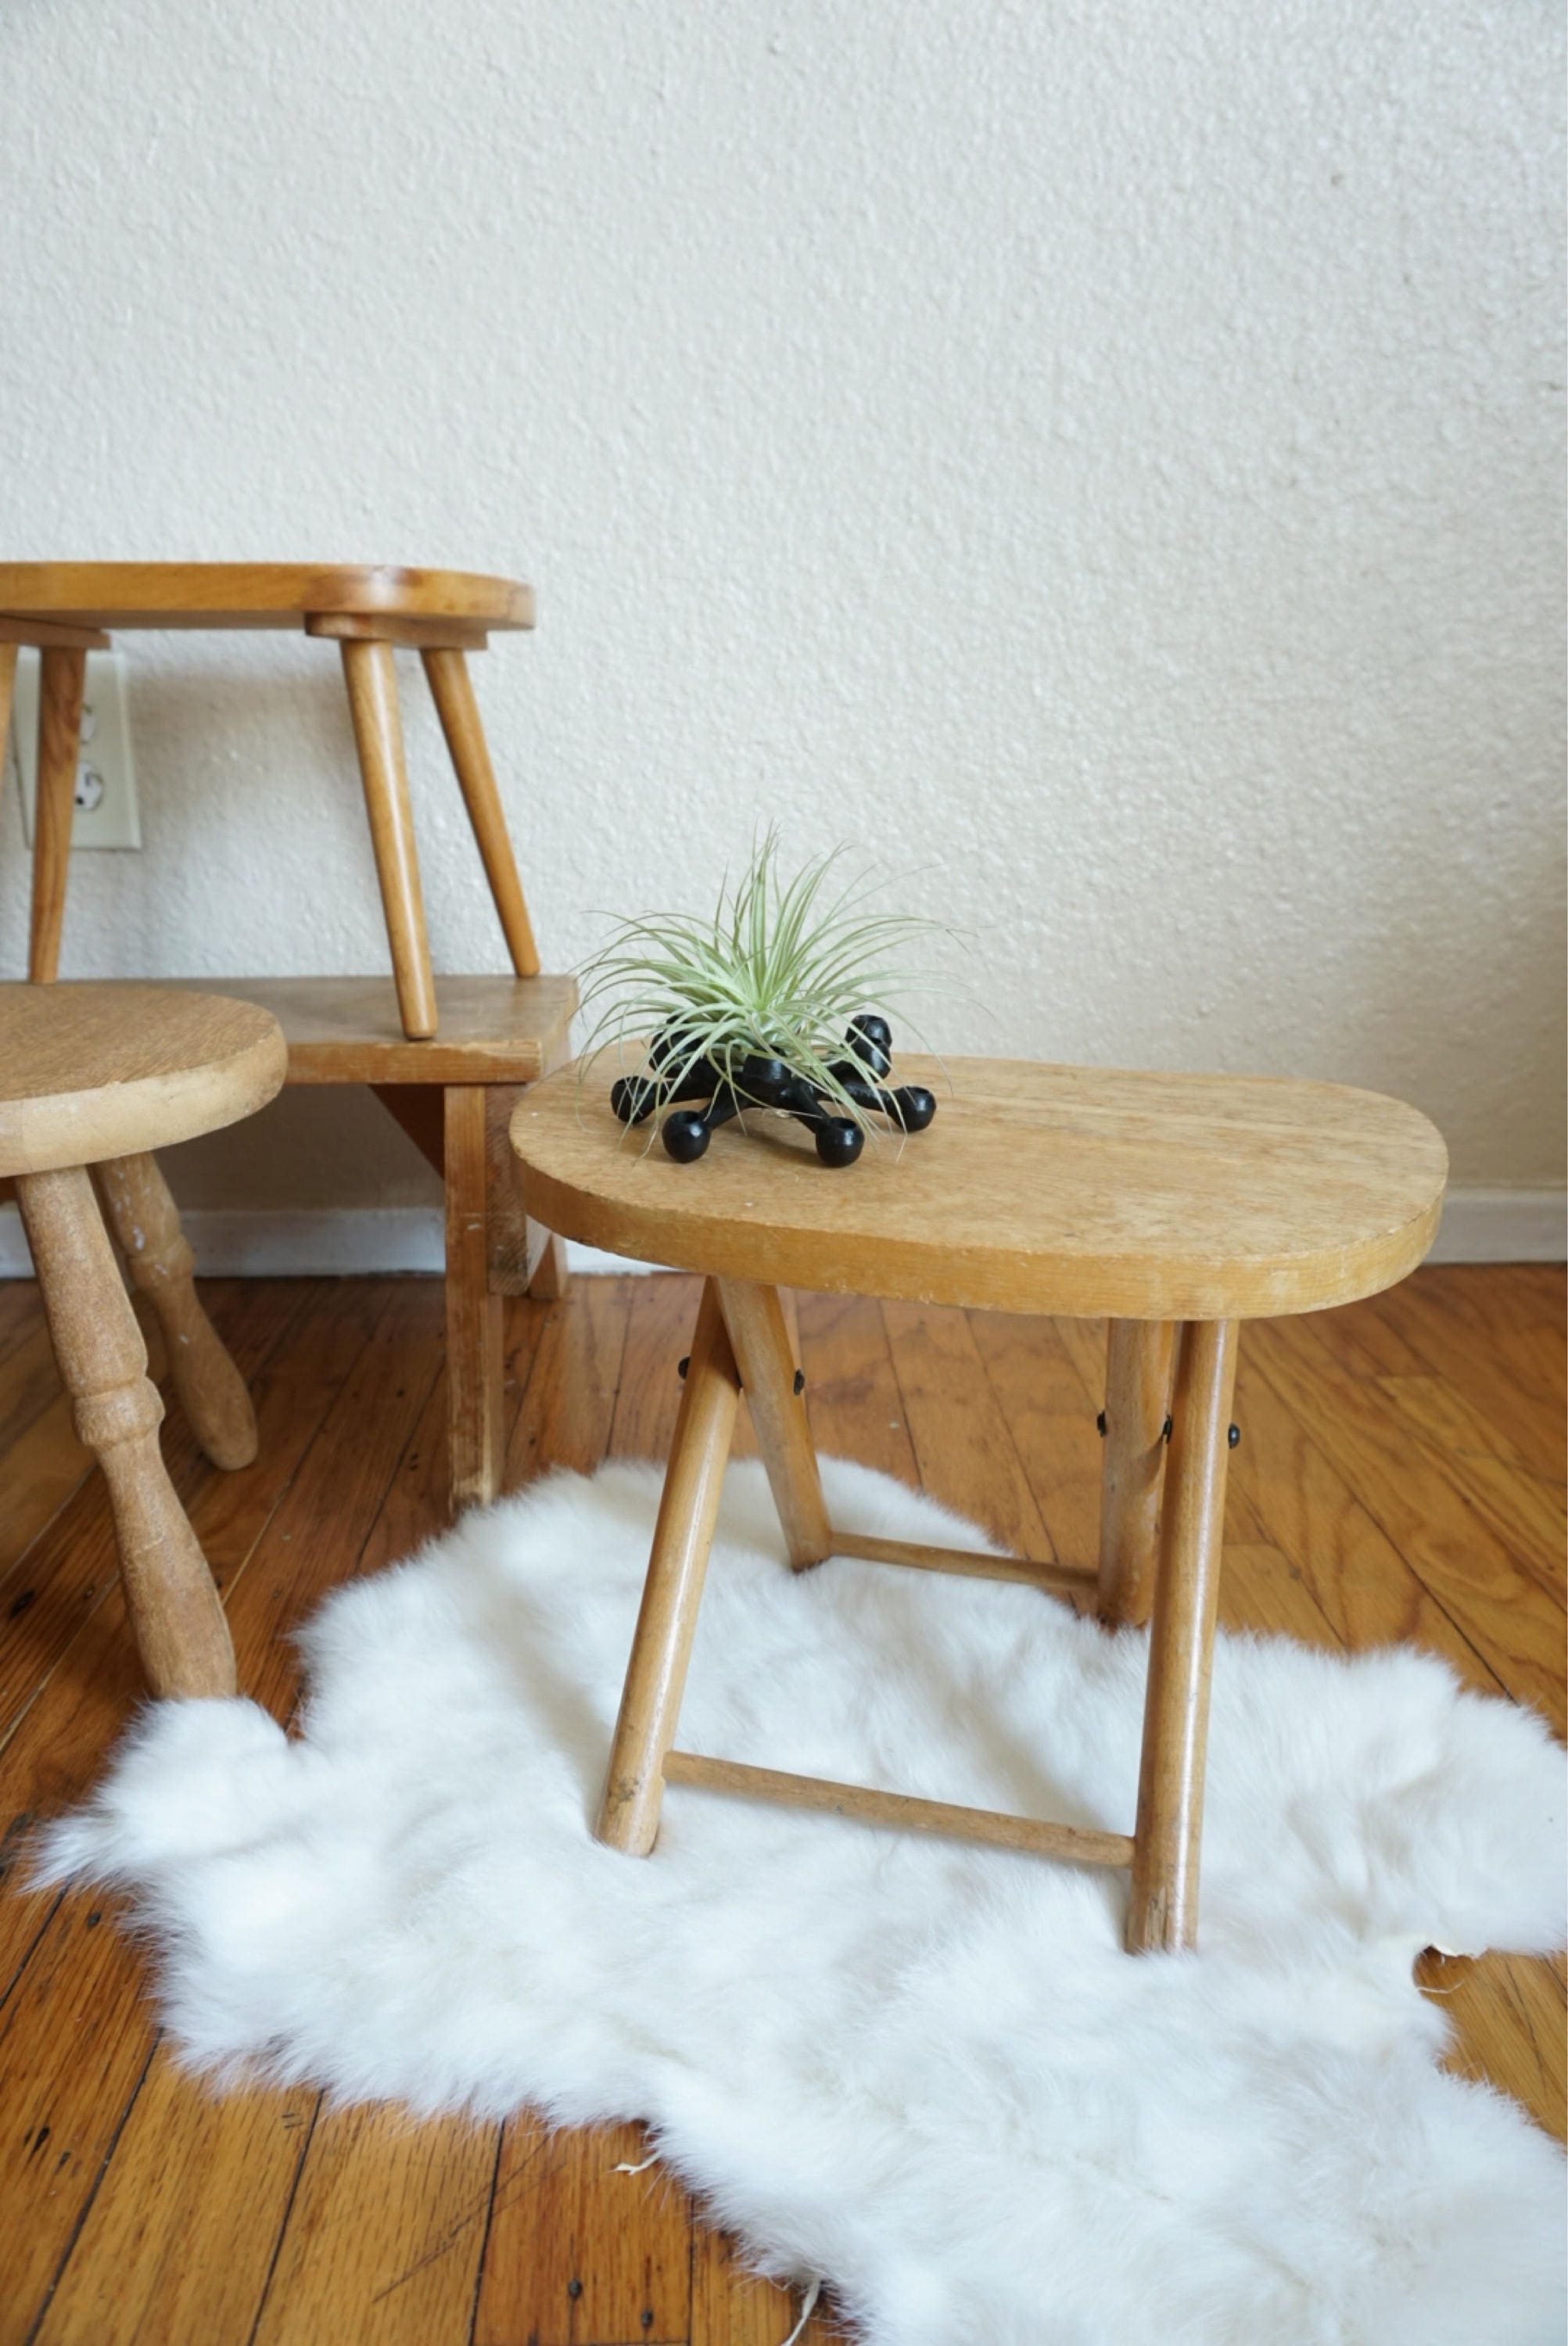 Vintage Wooden Nevco Fold N Carry Stool Stand Table